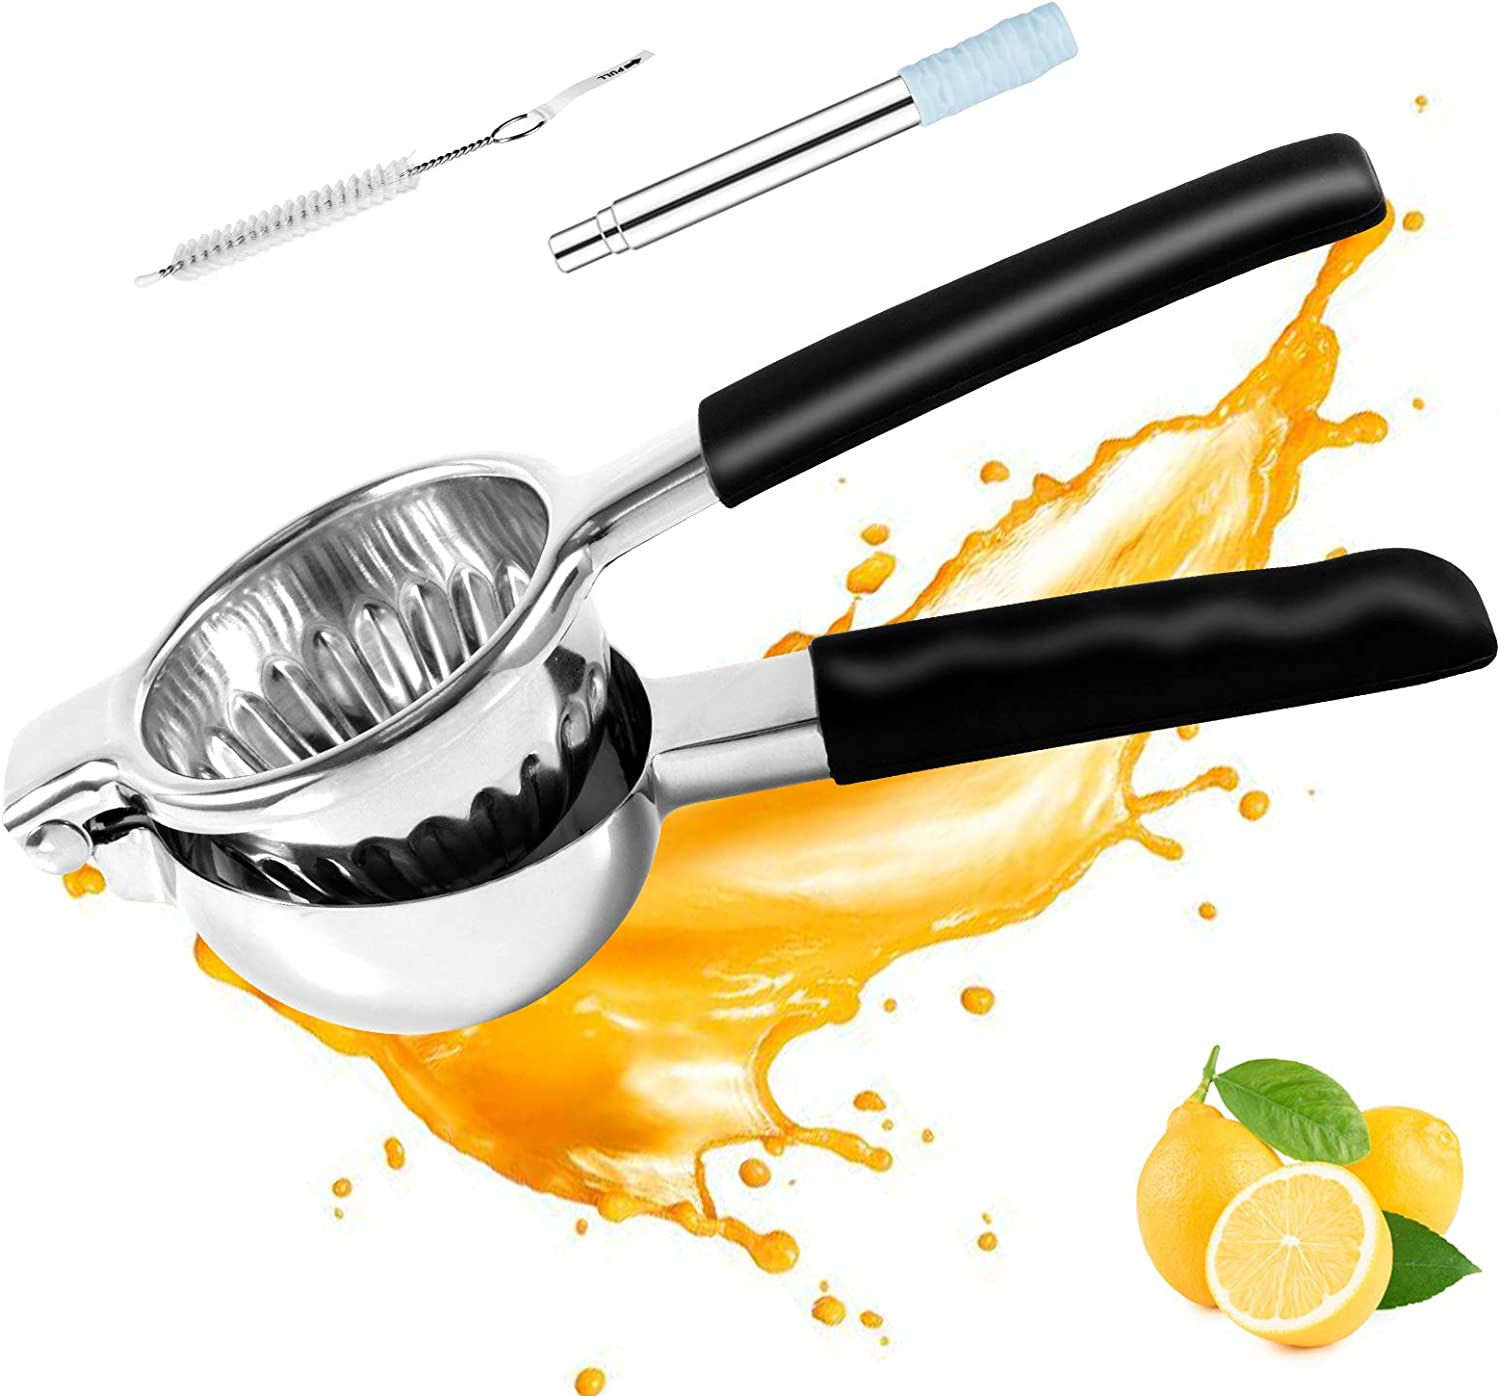 Lemon Juicer Stainless Steel with Silicone Handles Manual Citrus Juicer Easy Use Stainless Steel Fruit Juicer Hand Squeezer with Silicone Stainless Steel Straw and Mini Straw Brush